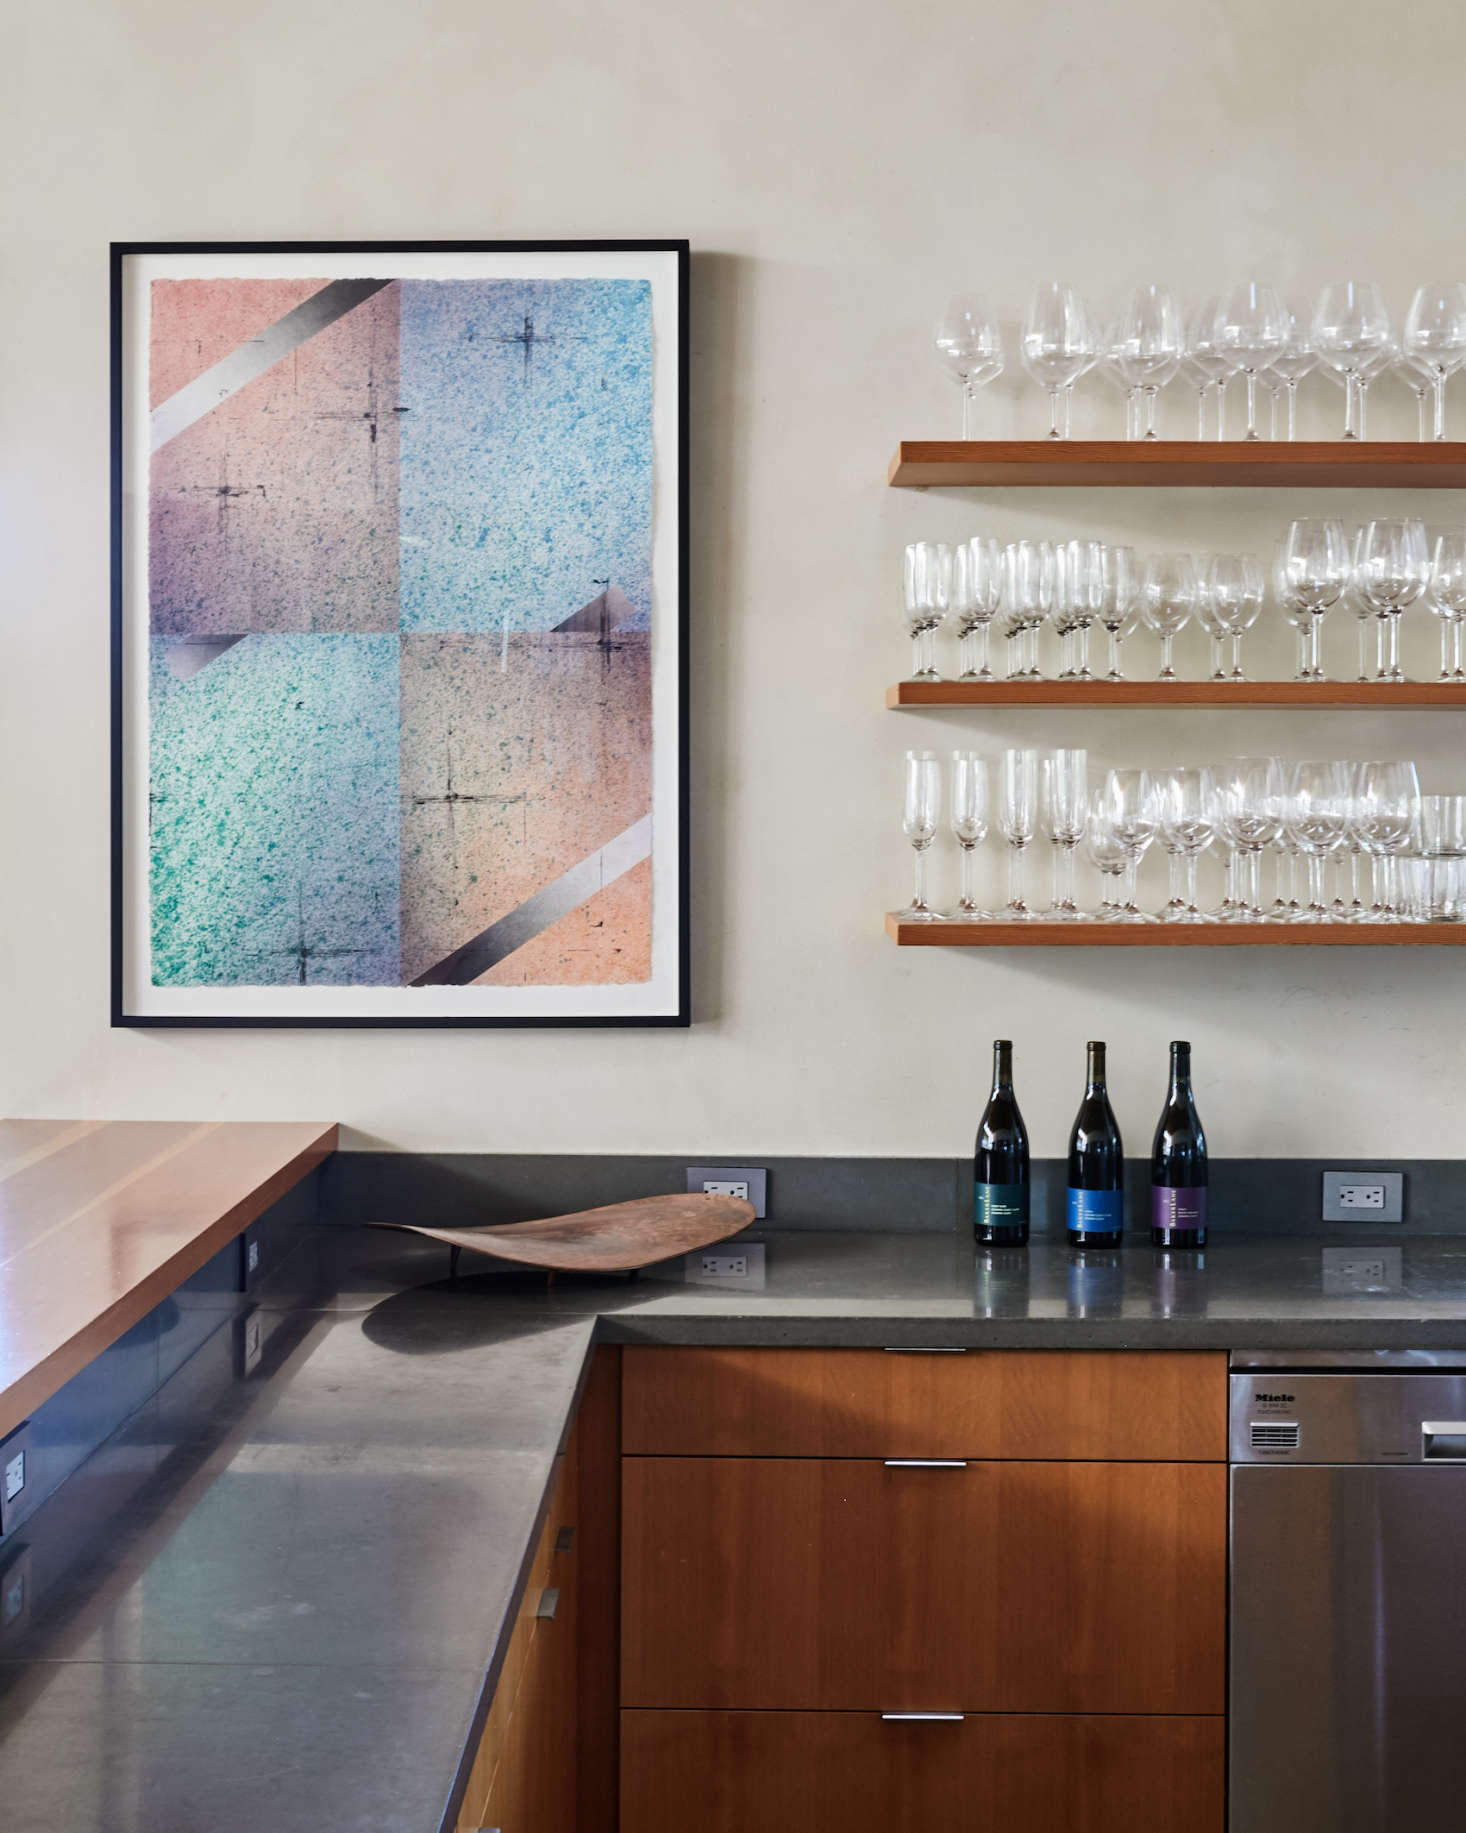 In addition to being a winemaker, Singer is a working artist (see his online portfolio here); the painting at the end of the kitchen is his.